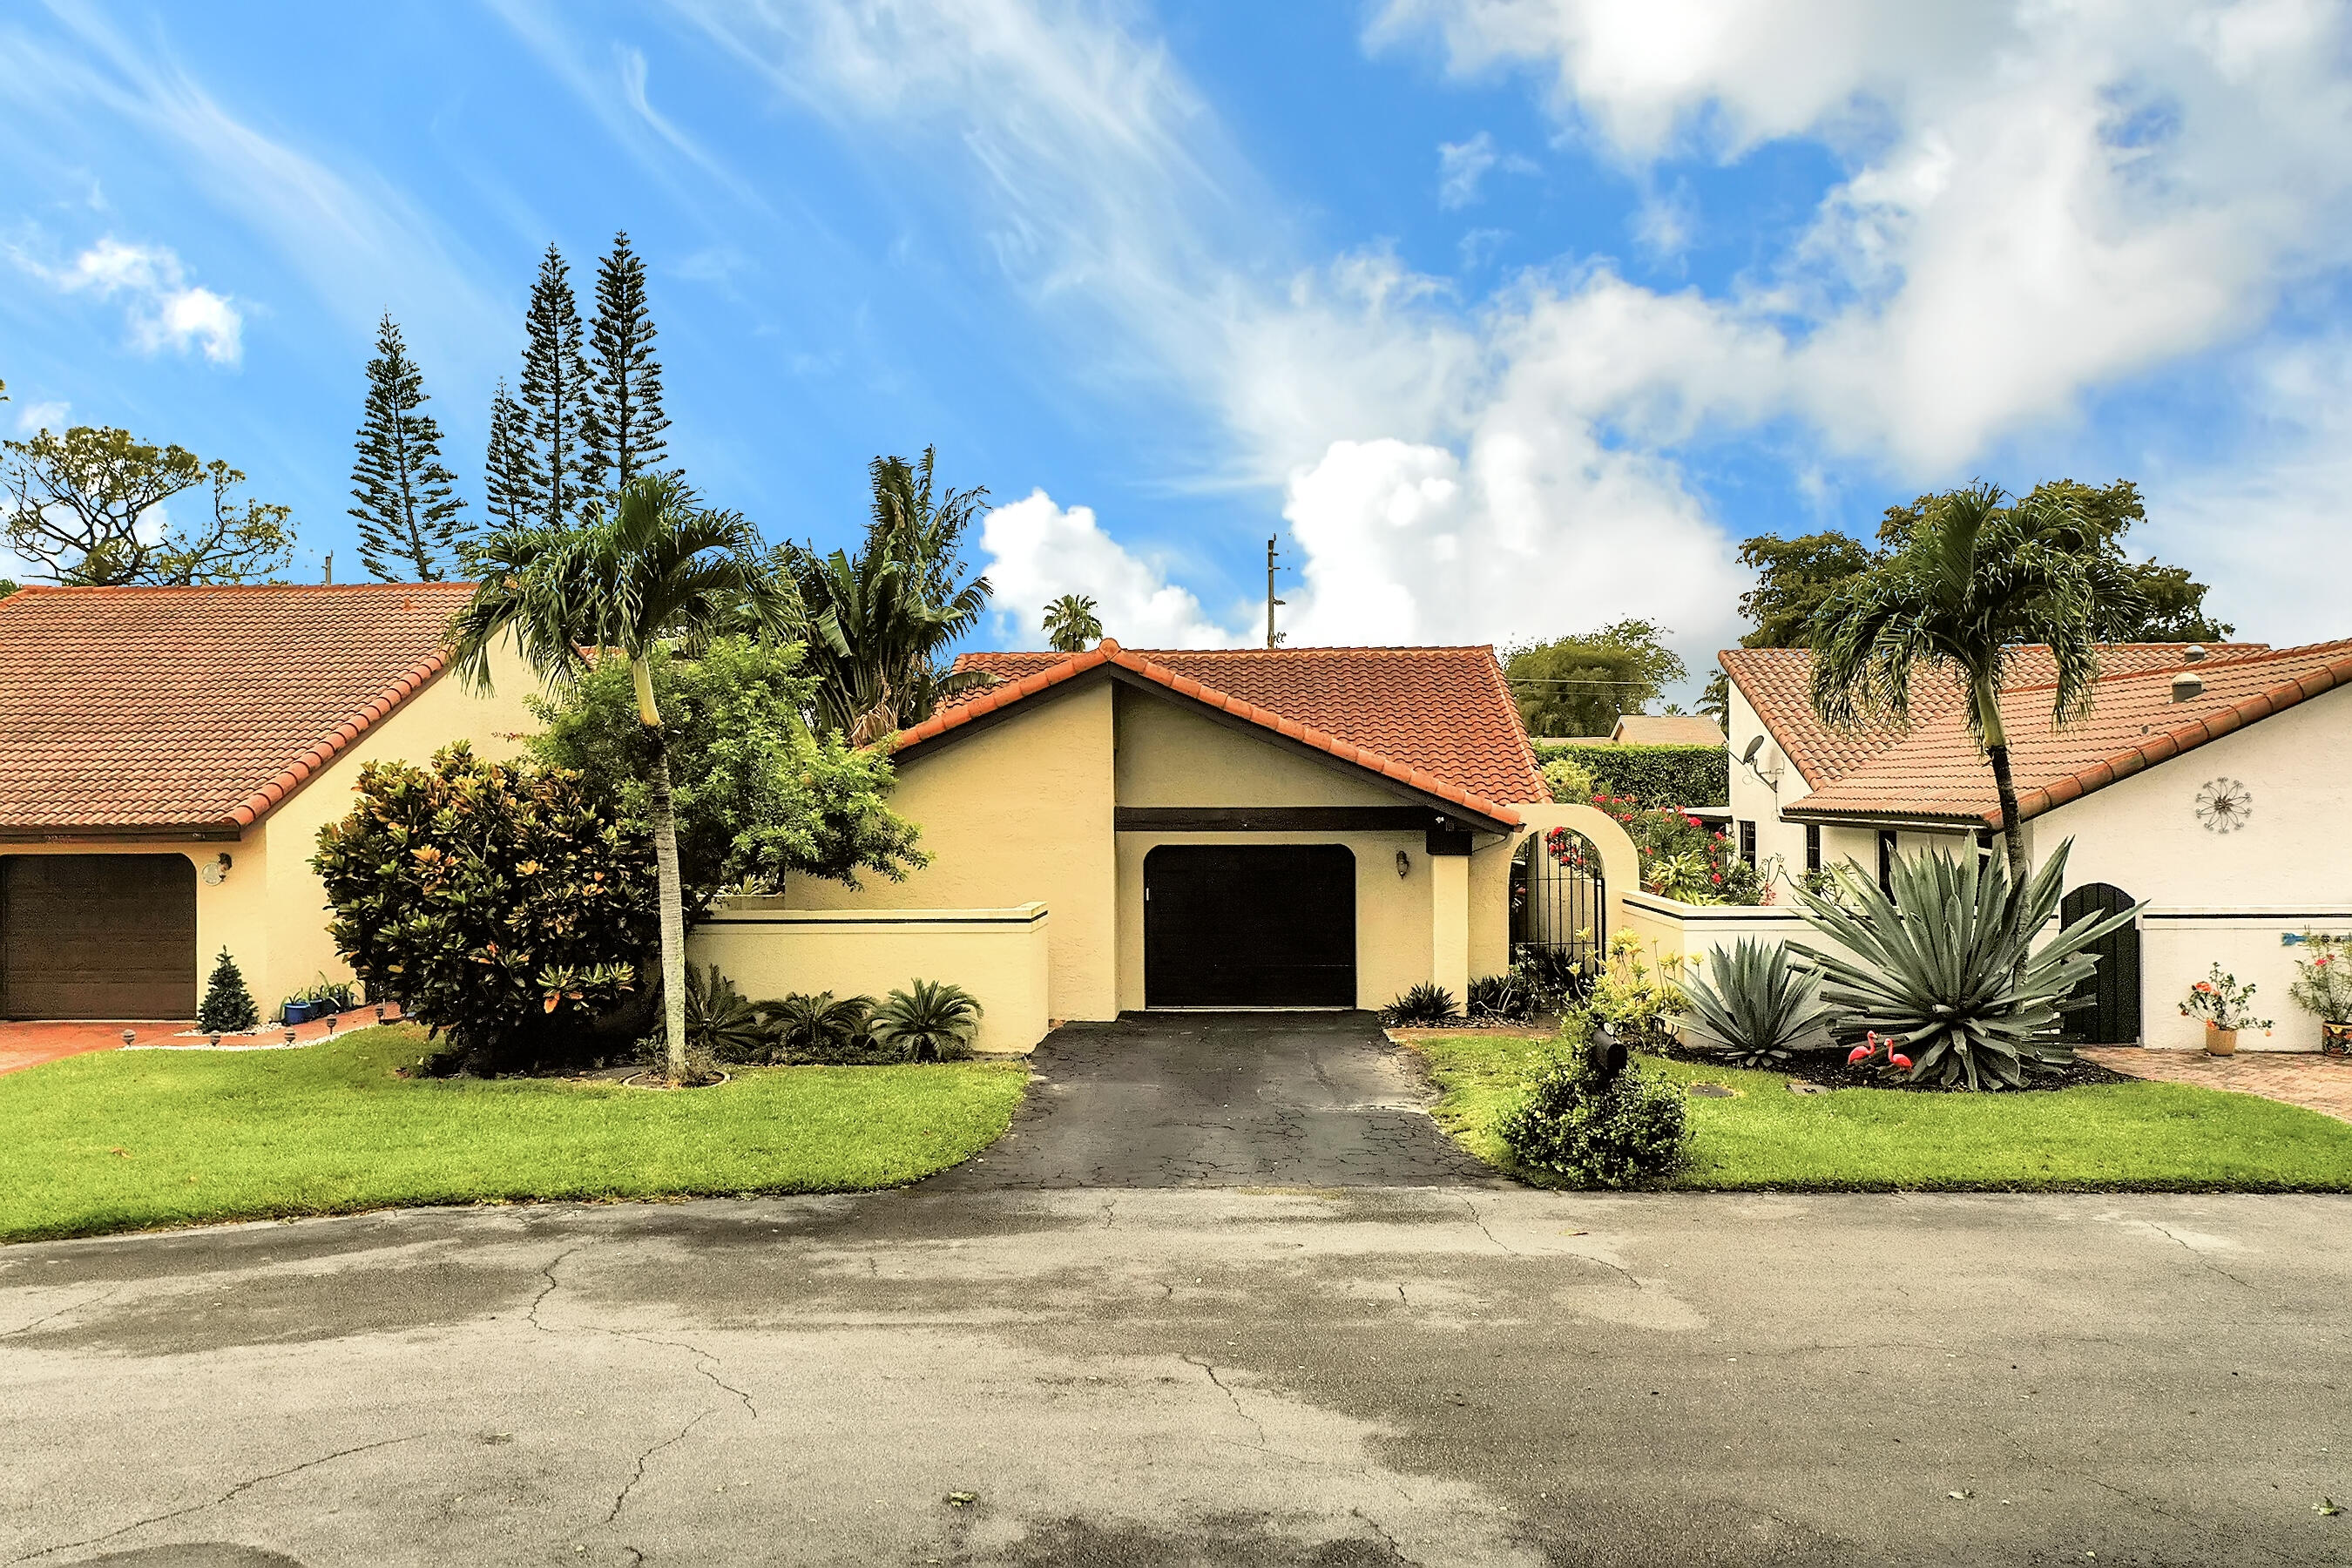 Home for sale in : Rainberry Lake Ph Iv-b Delray Beach Florida